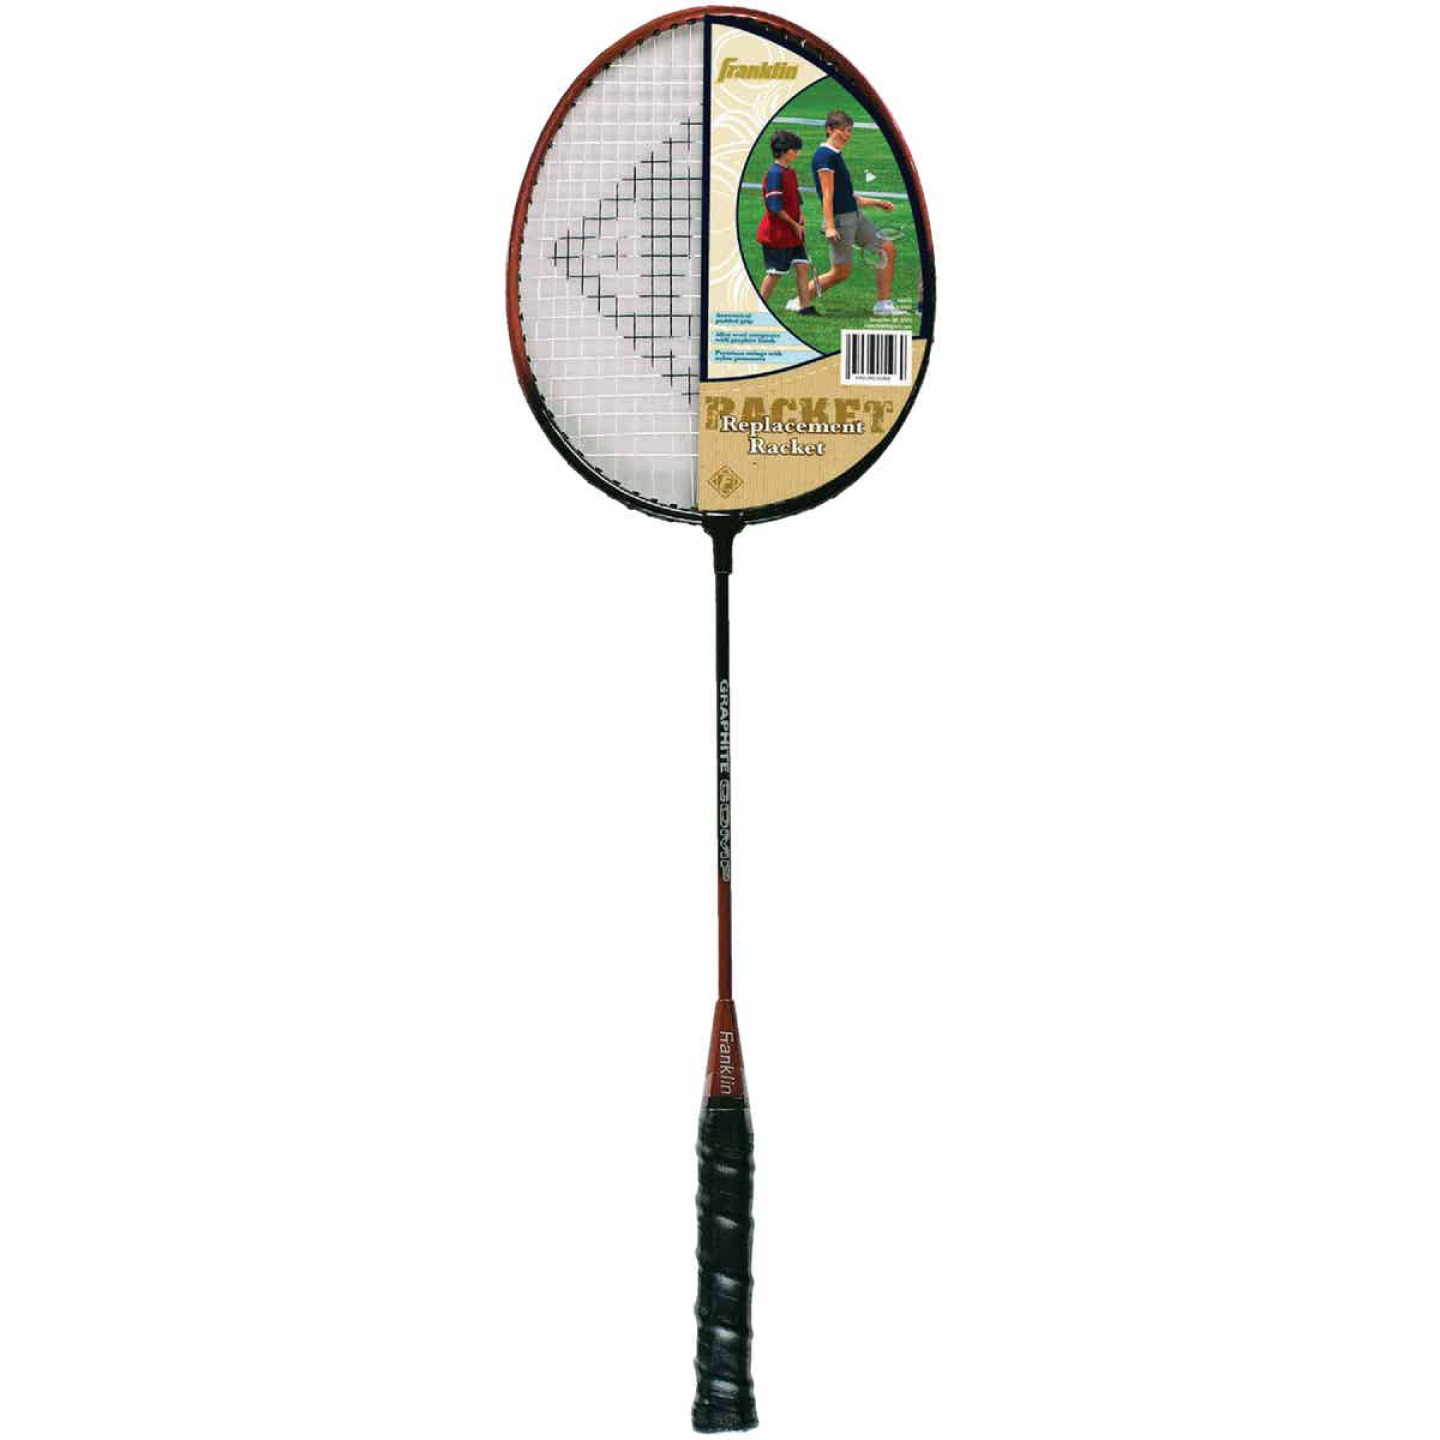 Franklin 2-Player Replacement Badminton Racket Set Image 1